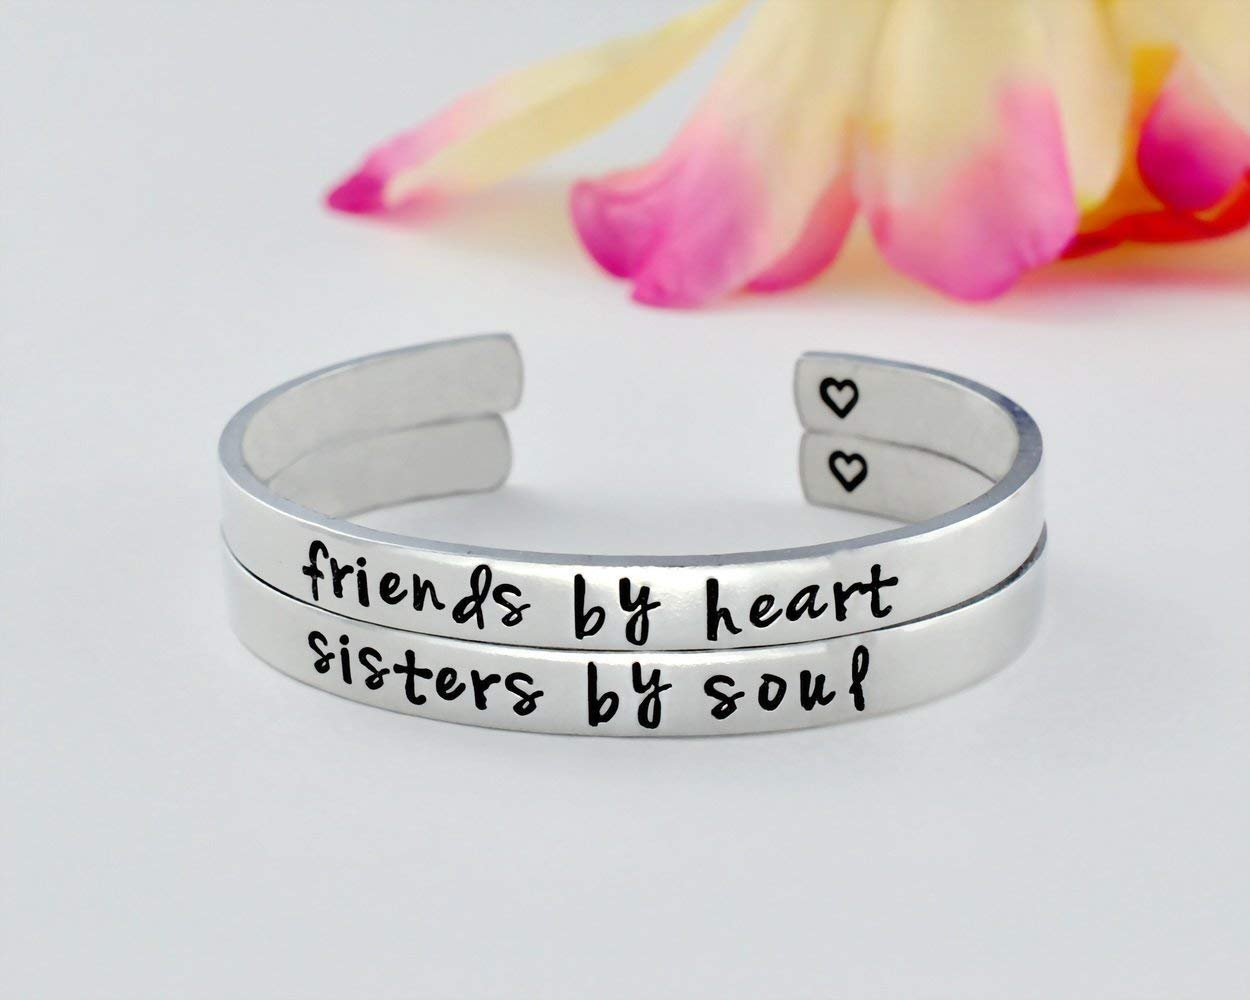 friends by heart / sisters by soul - Hand Stamped Aluminum Cuff Bracelet Set of 2, Sorority Sisters Best Friends BFF Besties Friendship Personalized Gift